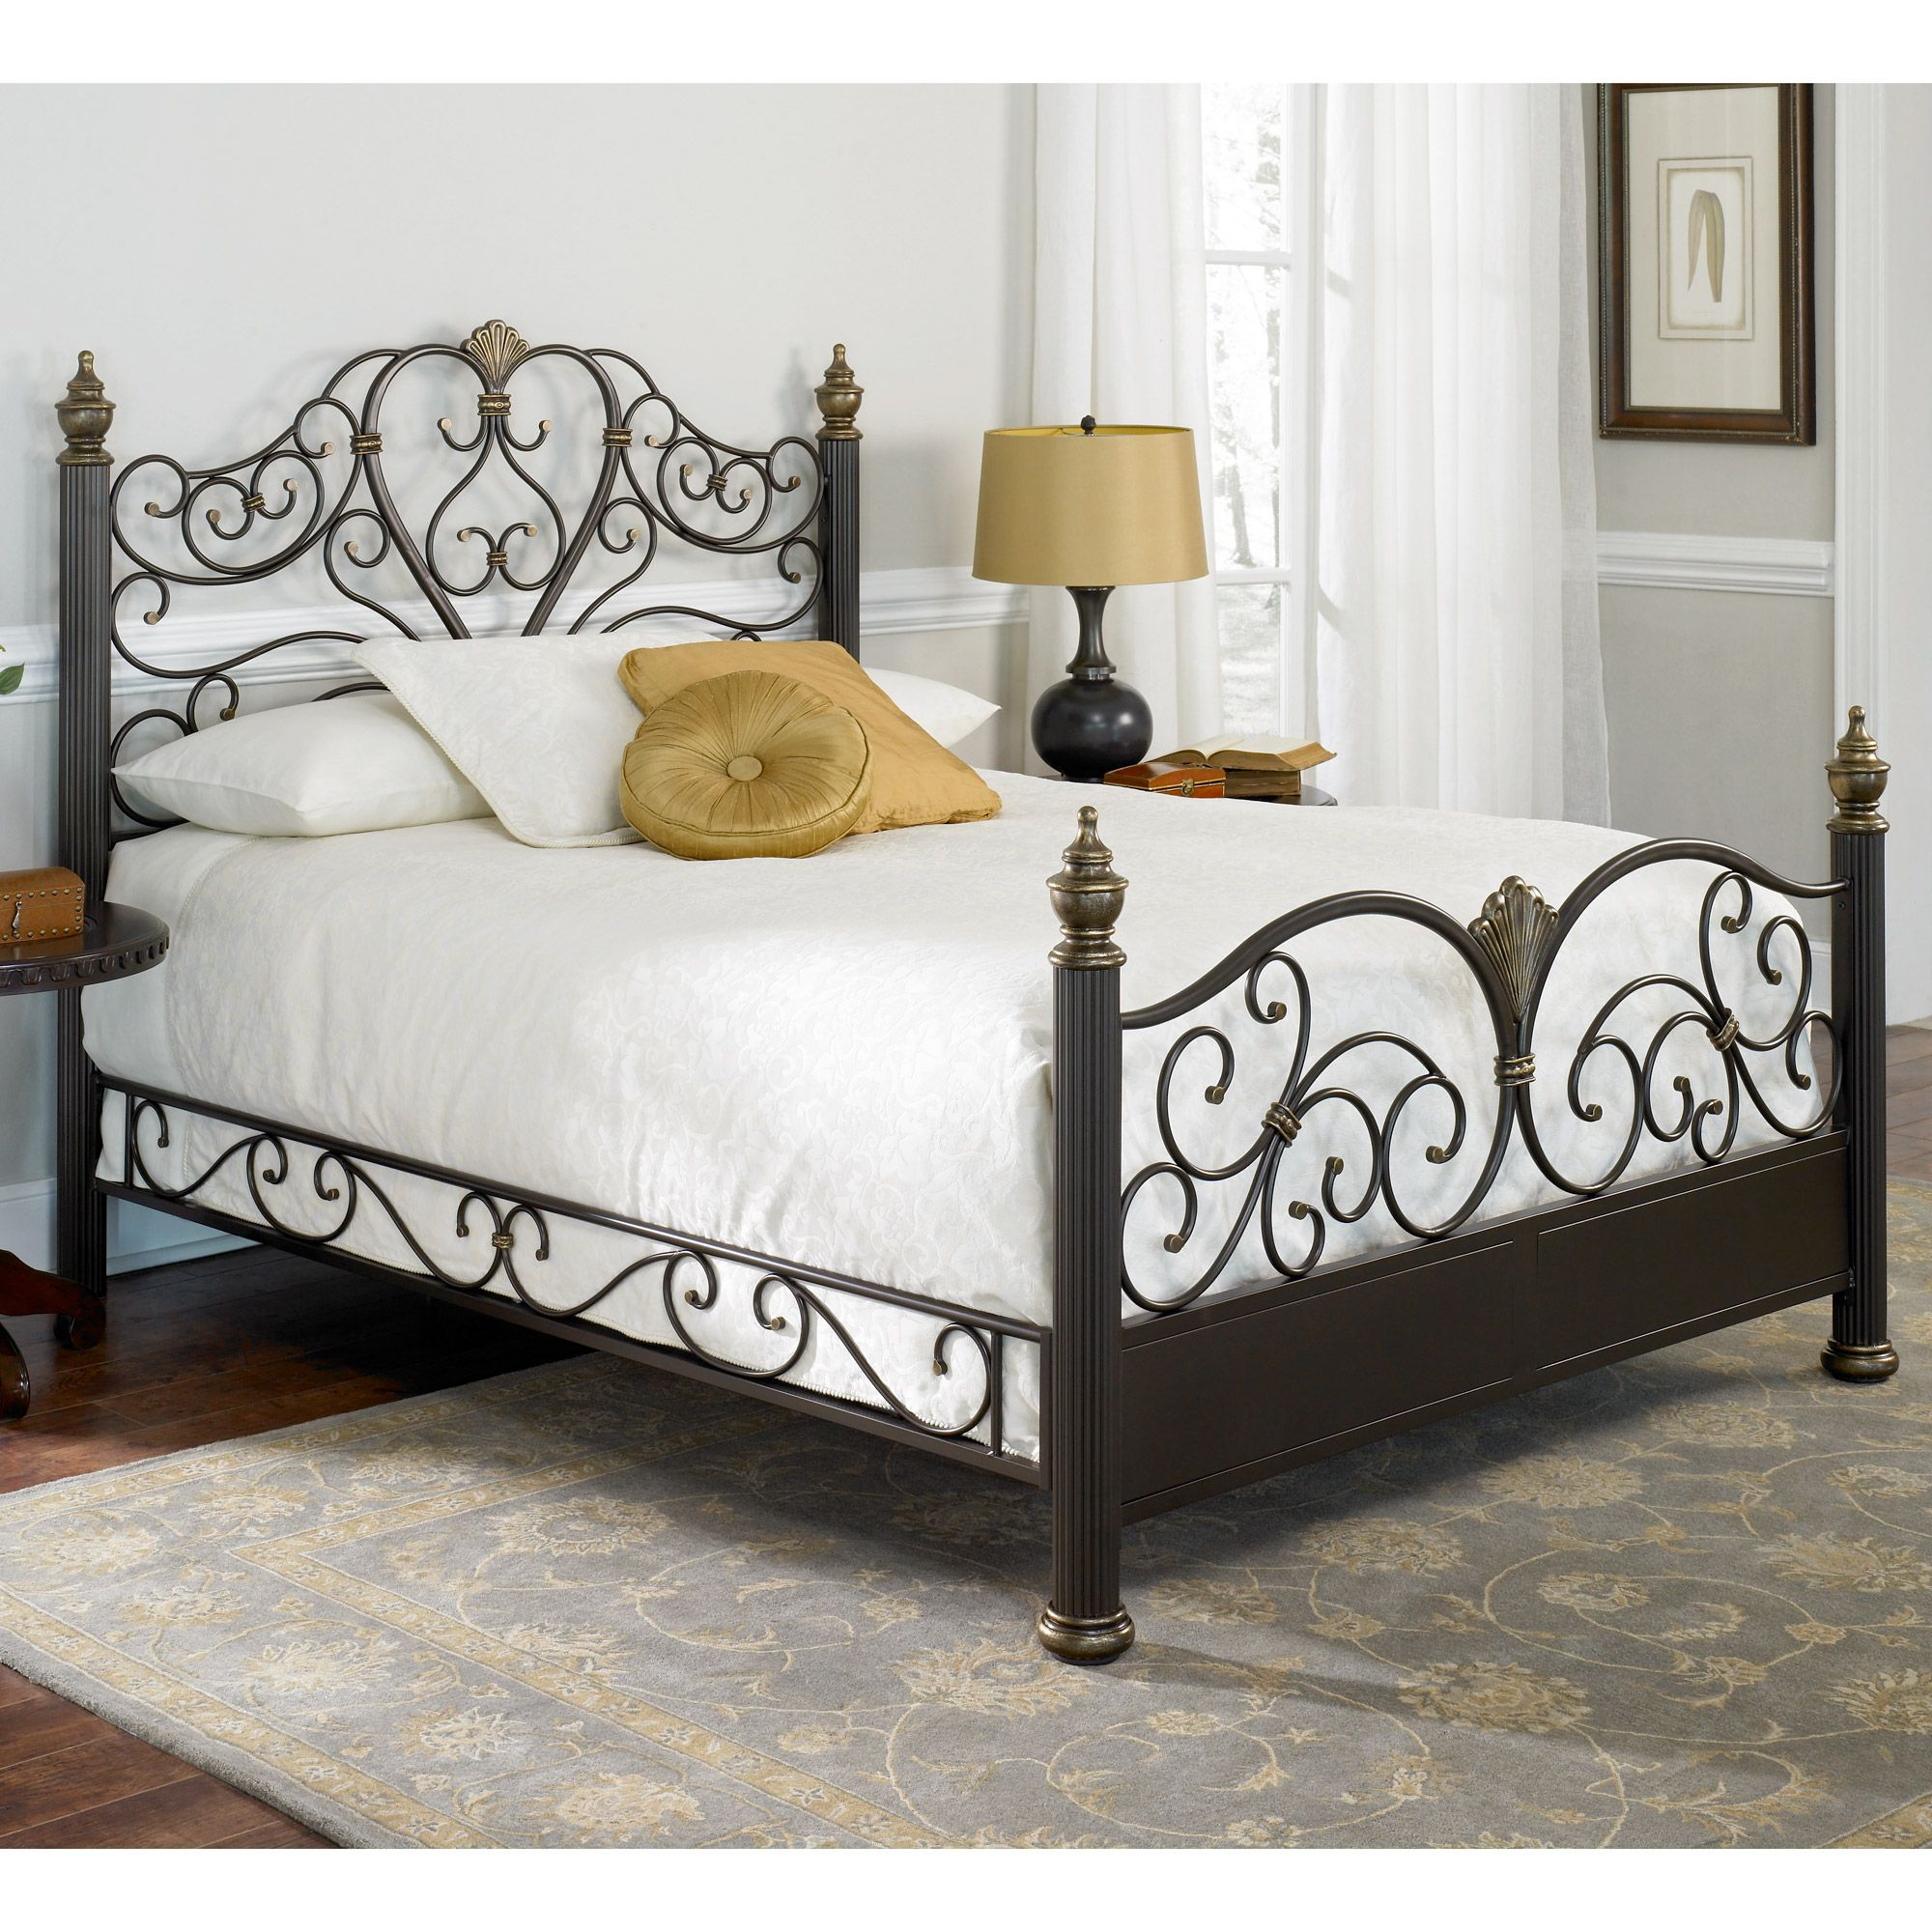 Elegance Iron Bed